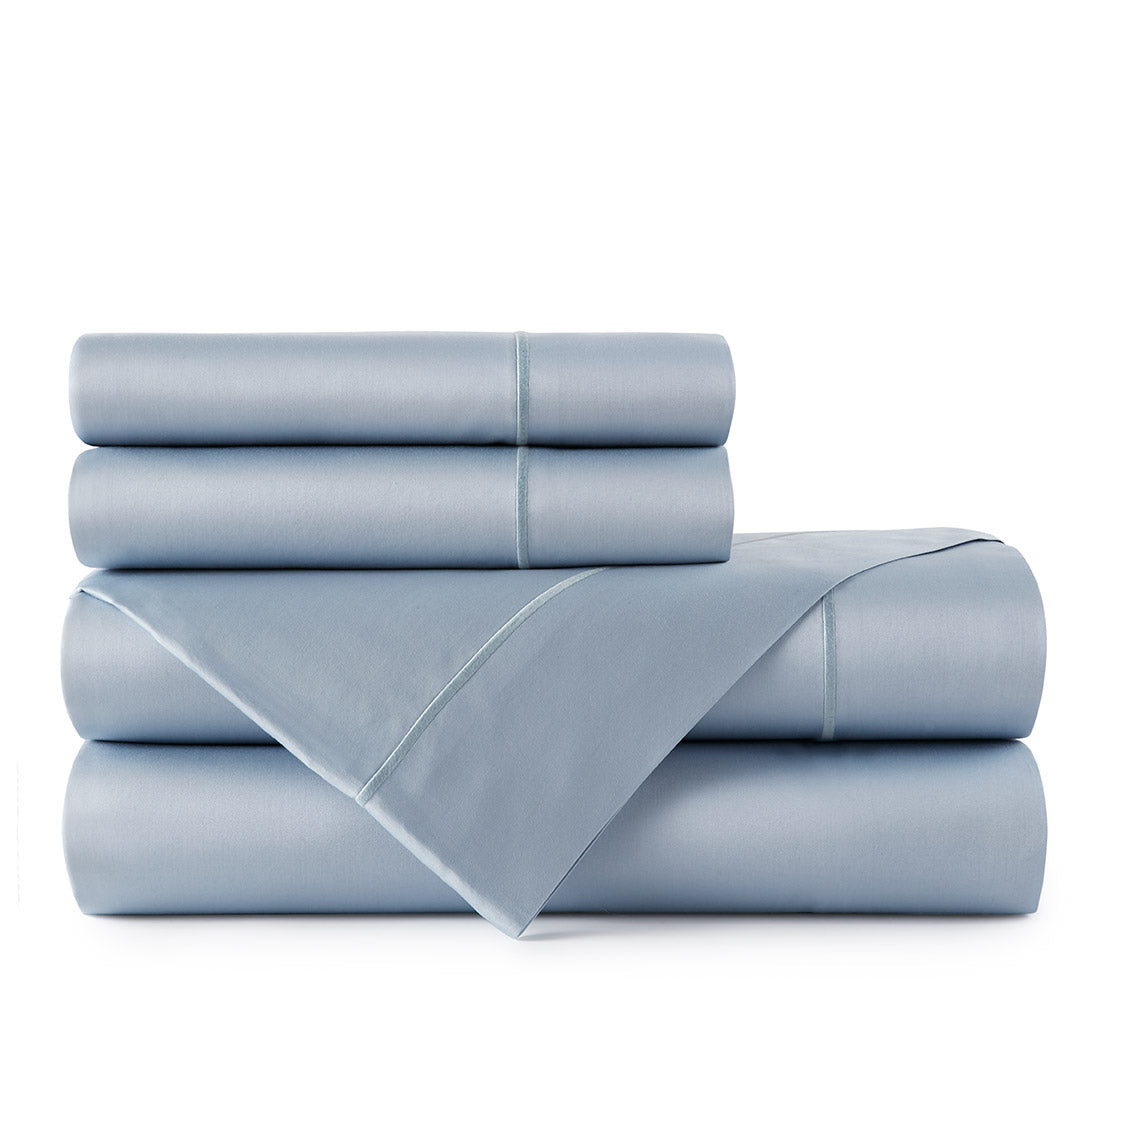 Luxury Bedding Sets For Queen Size Beds Shop Queen Bedding Sets Peacock Alley